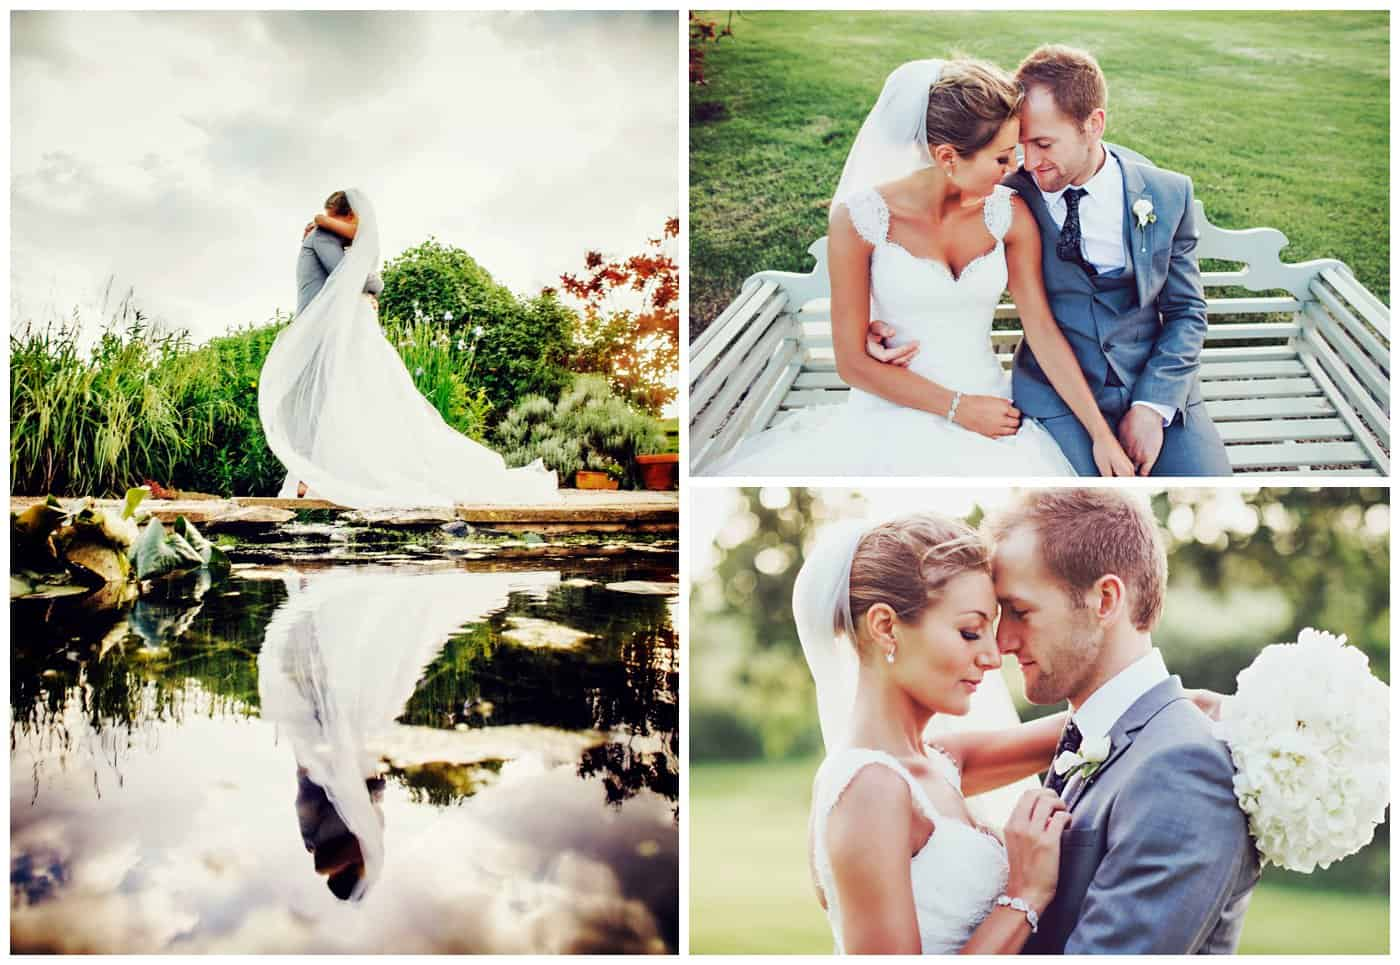 wethele-manor-wedding-photographer_1211